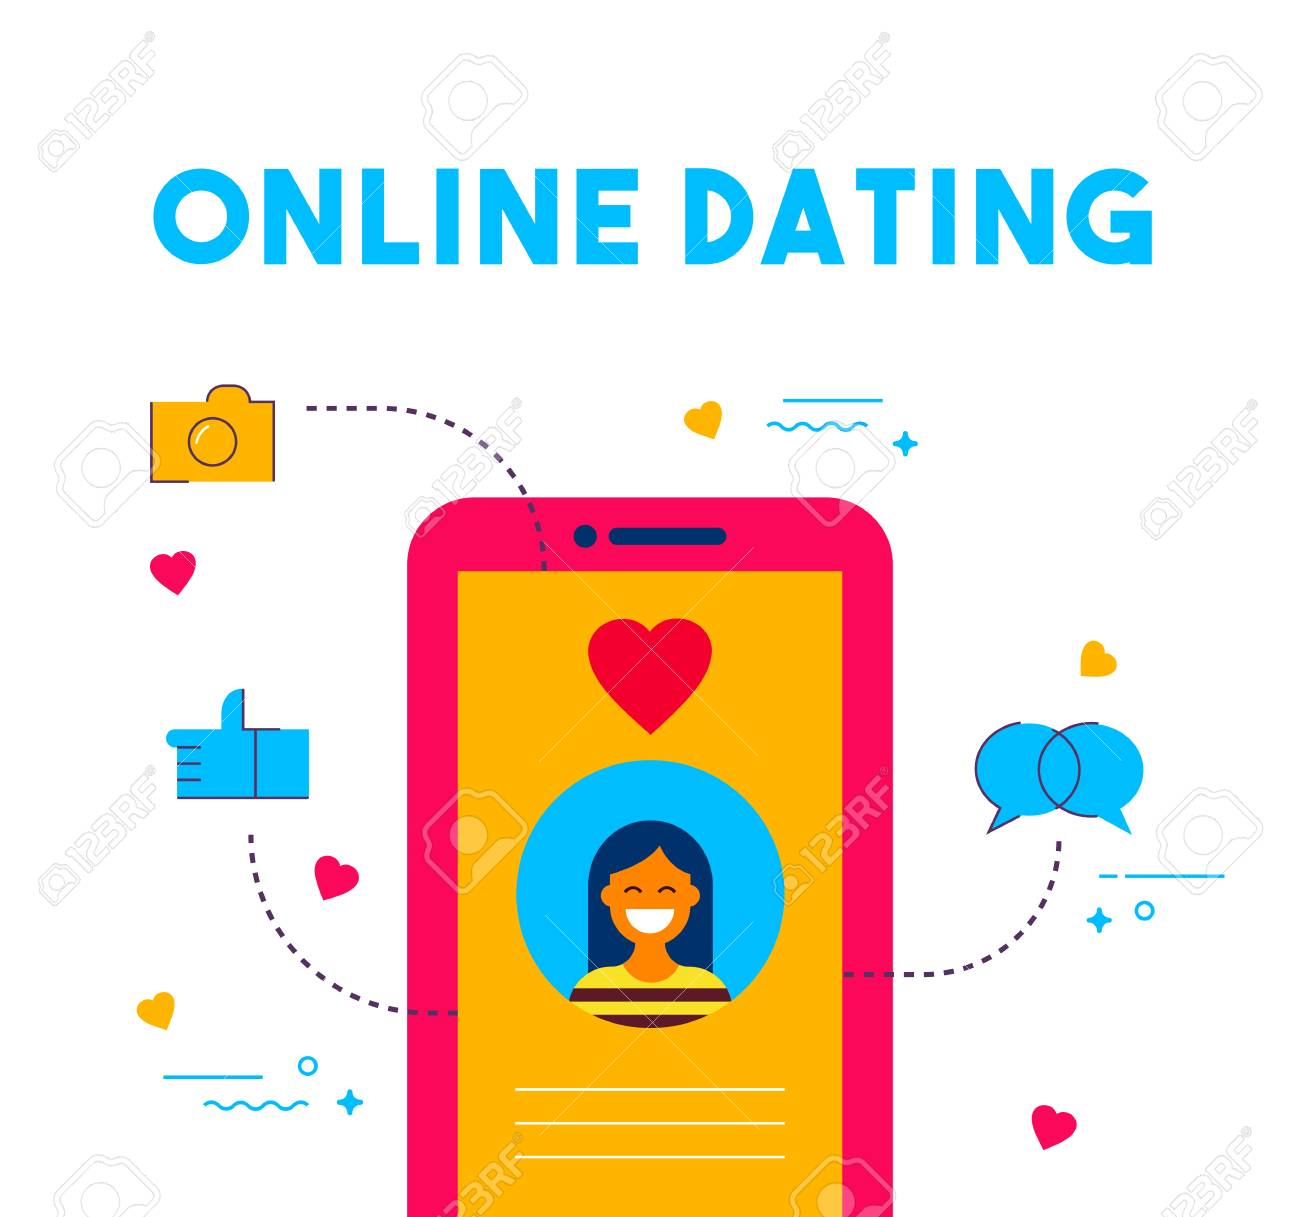 how to text a girl online dating